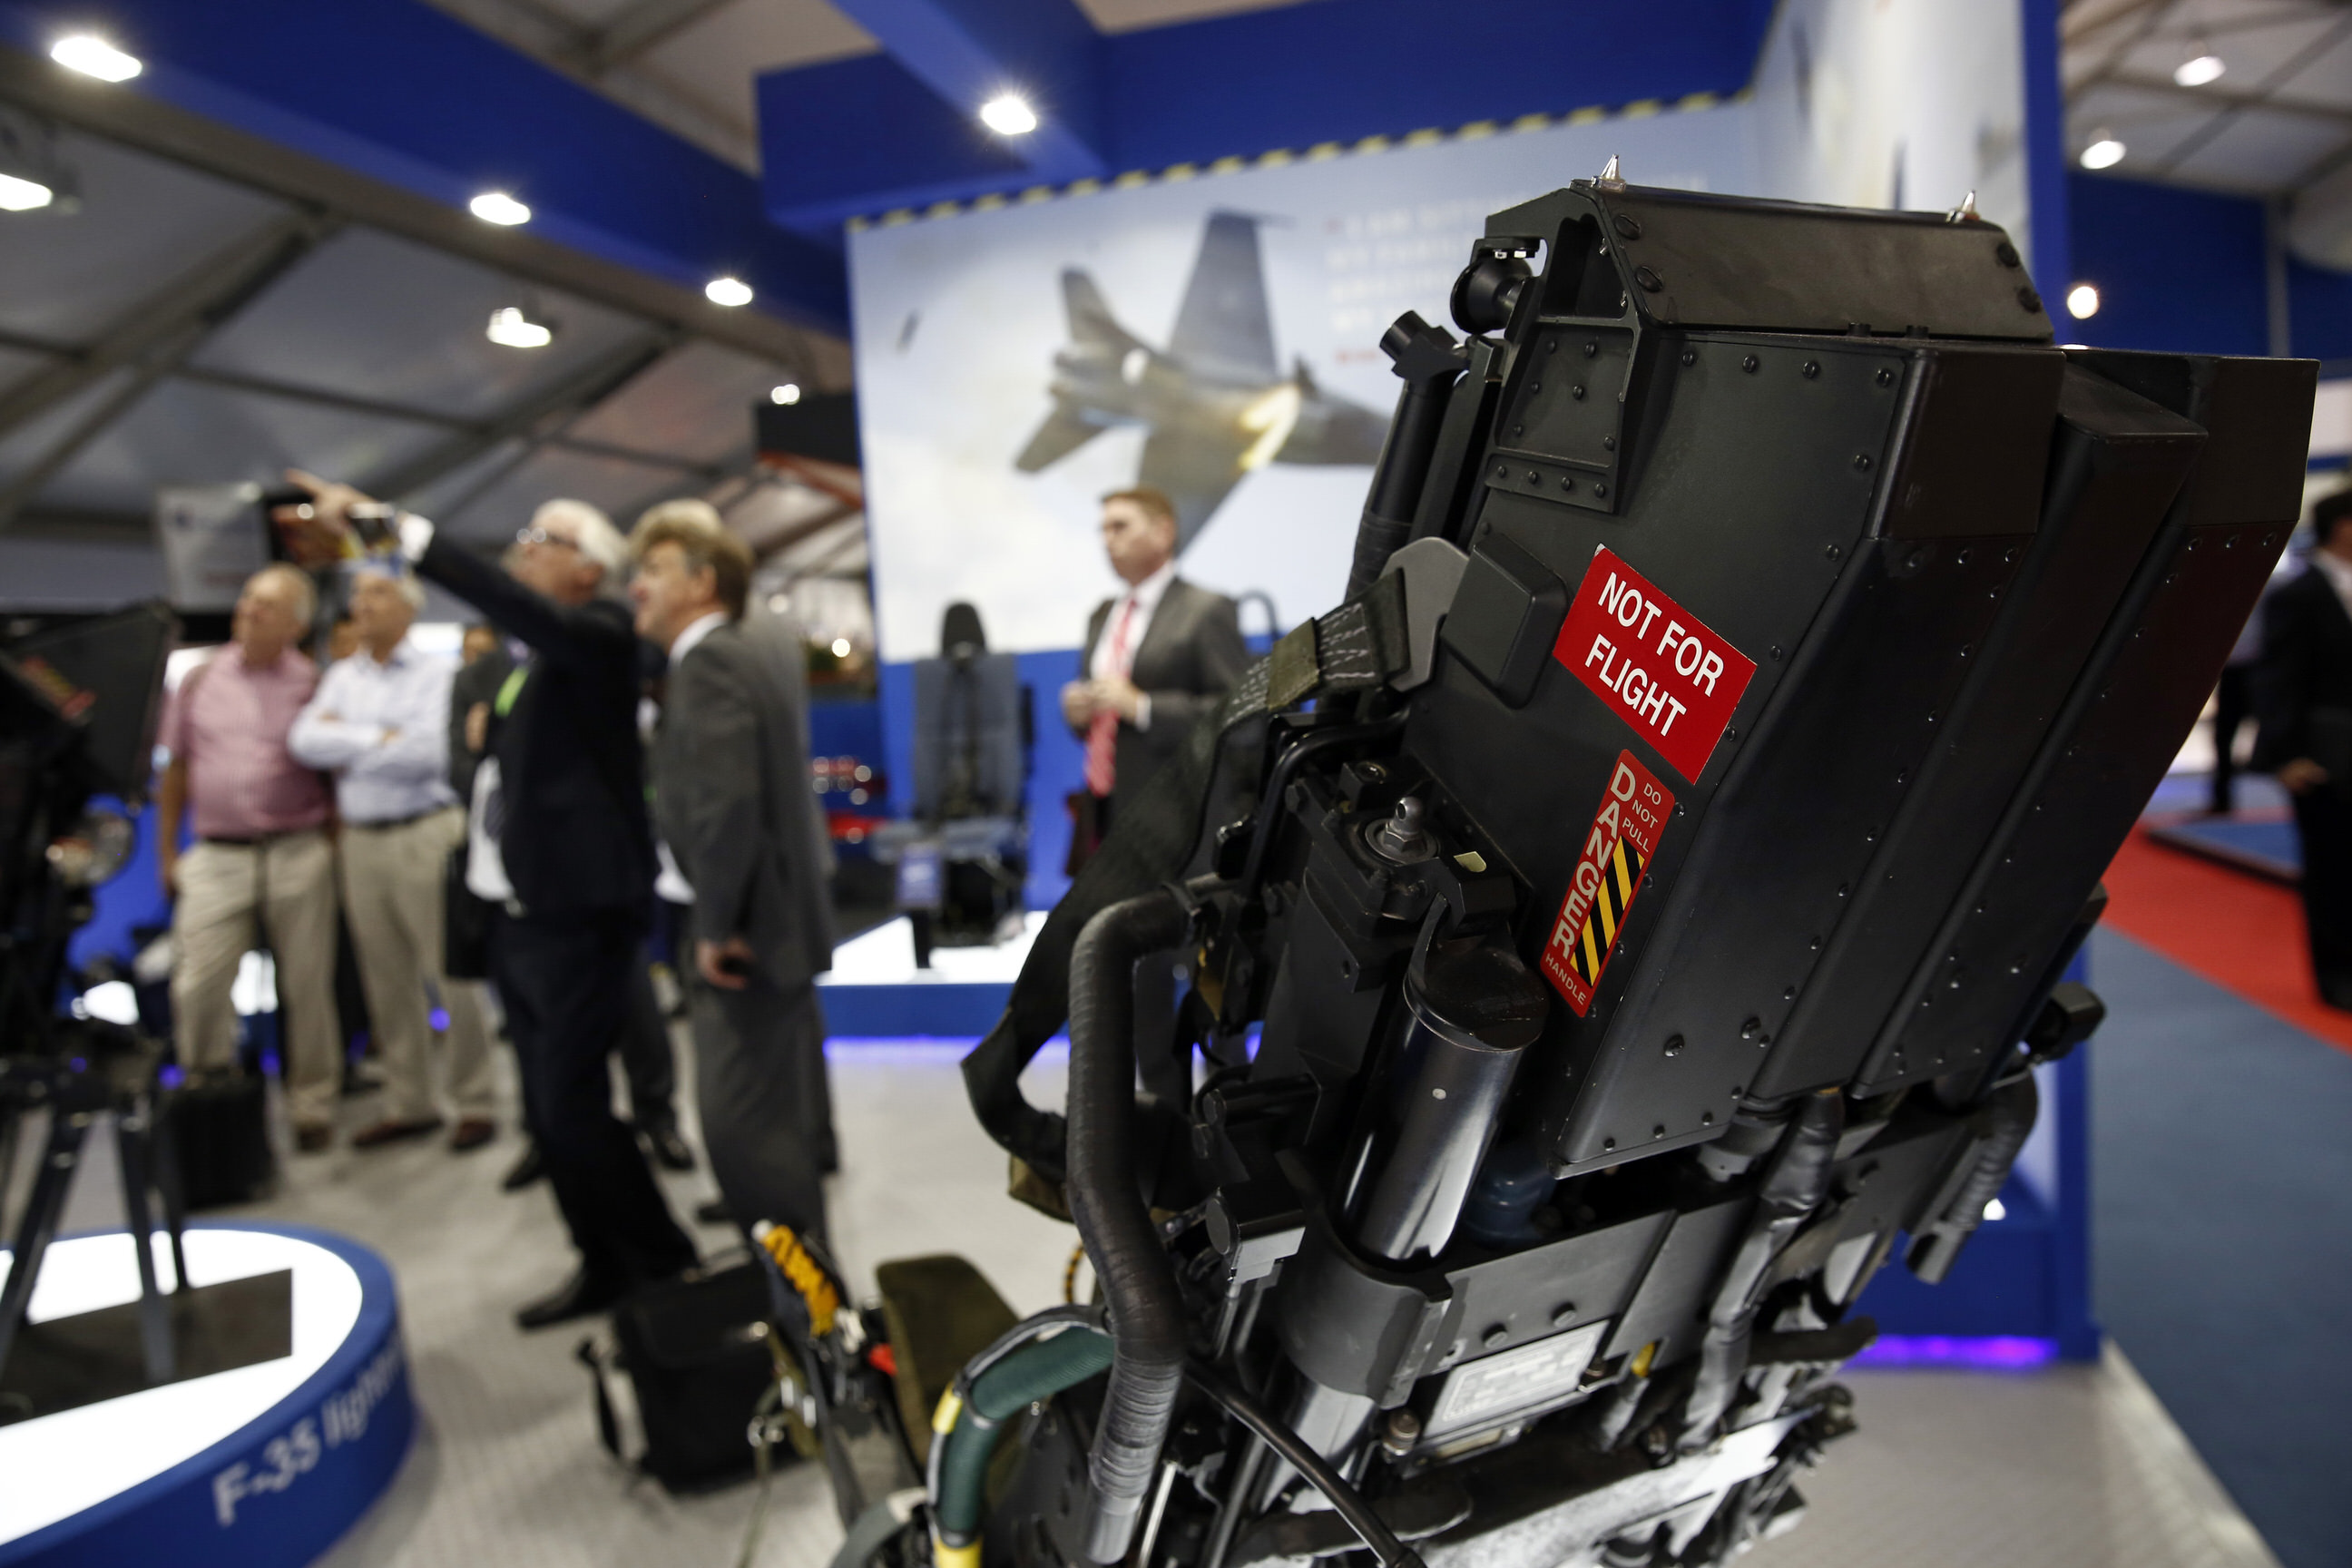 A 'Not For Flight' warning sticker sits on the side of an ejector seat, used in the Lockheed Martin Corp. F-35 Lightning II joint strike fighter jet, as it stands on display on the second day of the Farnborough International Airshow in Farnborough, U.K., on Tuesday, July 15, 2014. Photographer: Simon Dawson/Bloomberg